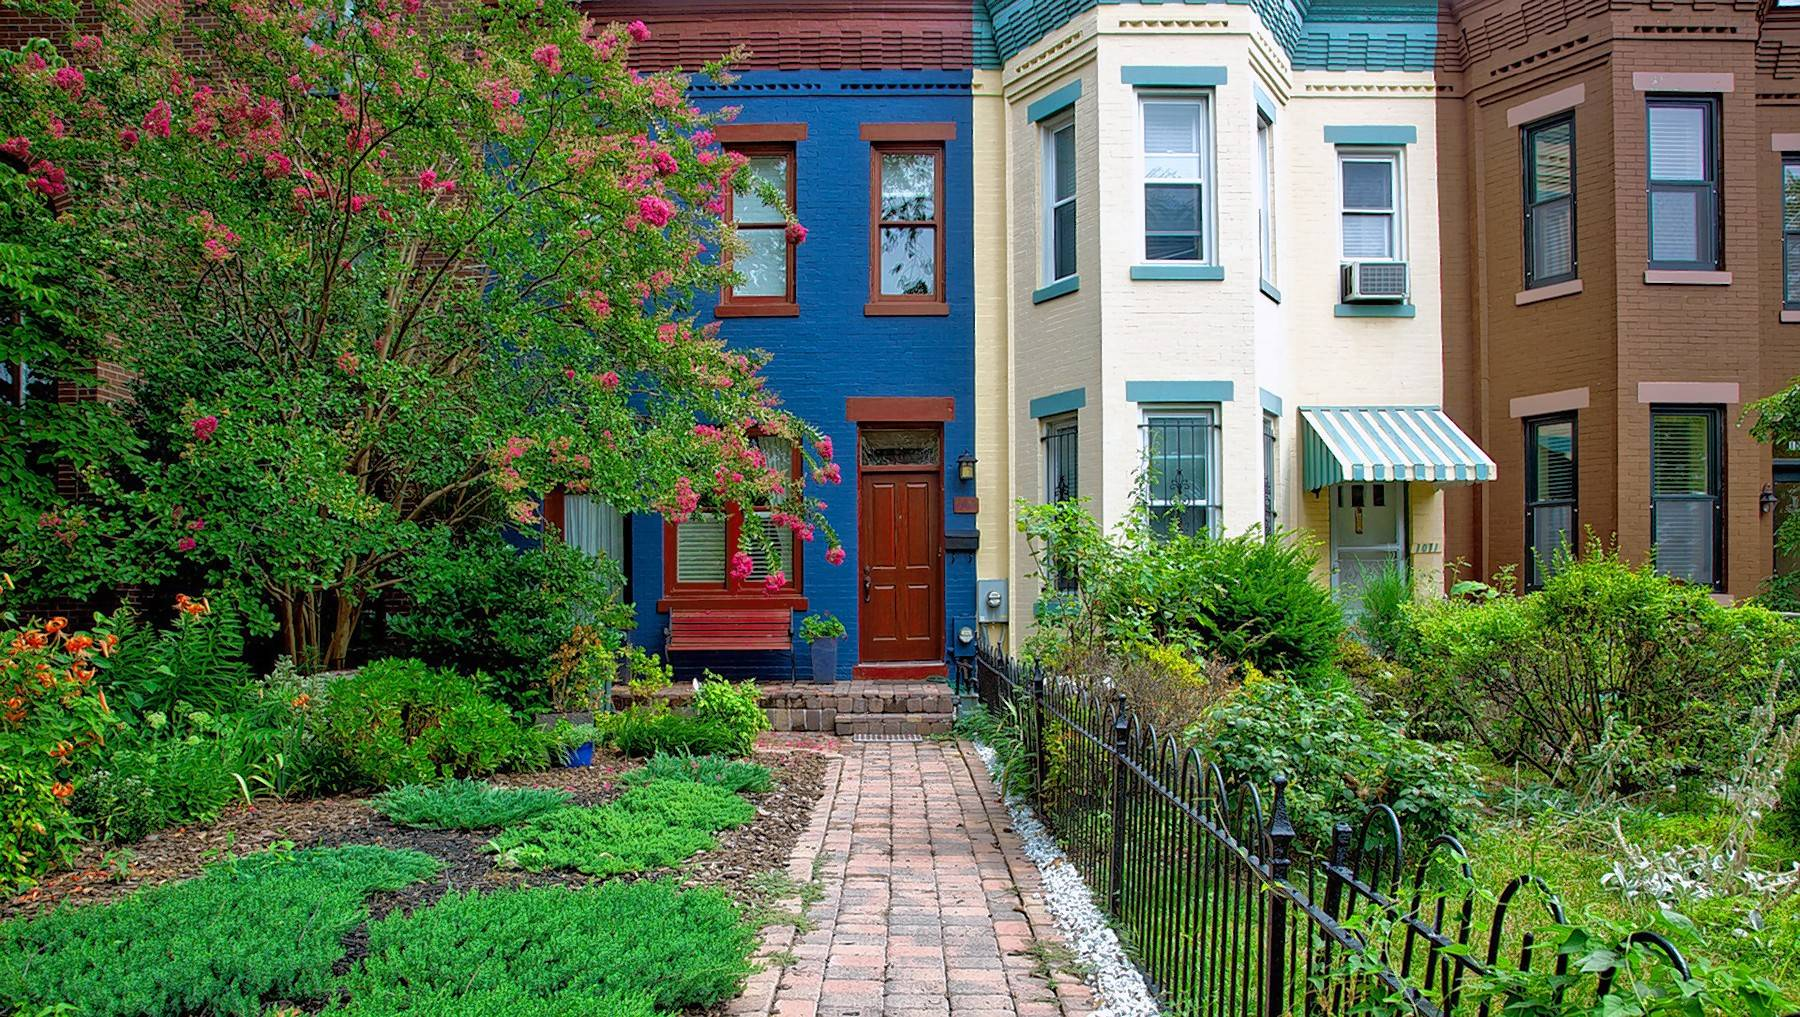 Urban centers, such as these historic row houses in Washington, D.C., offer so many conveniences of life.